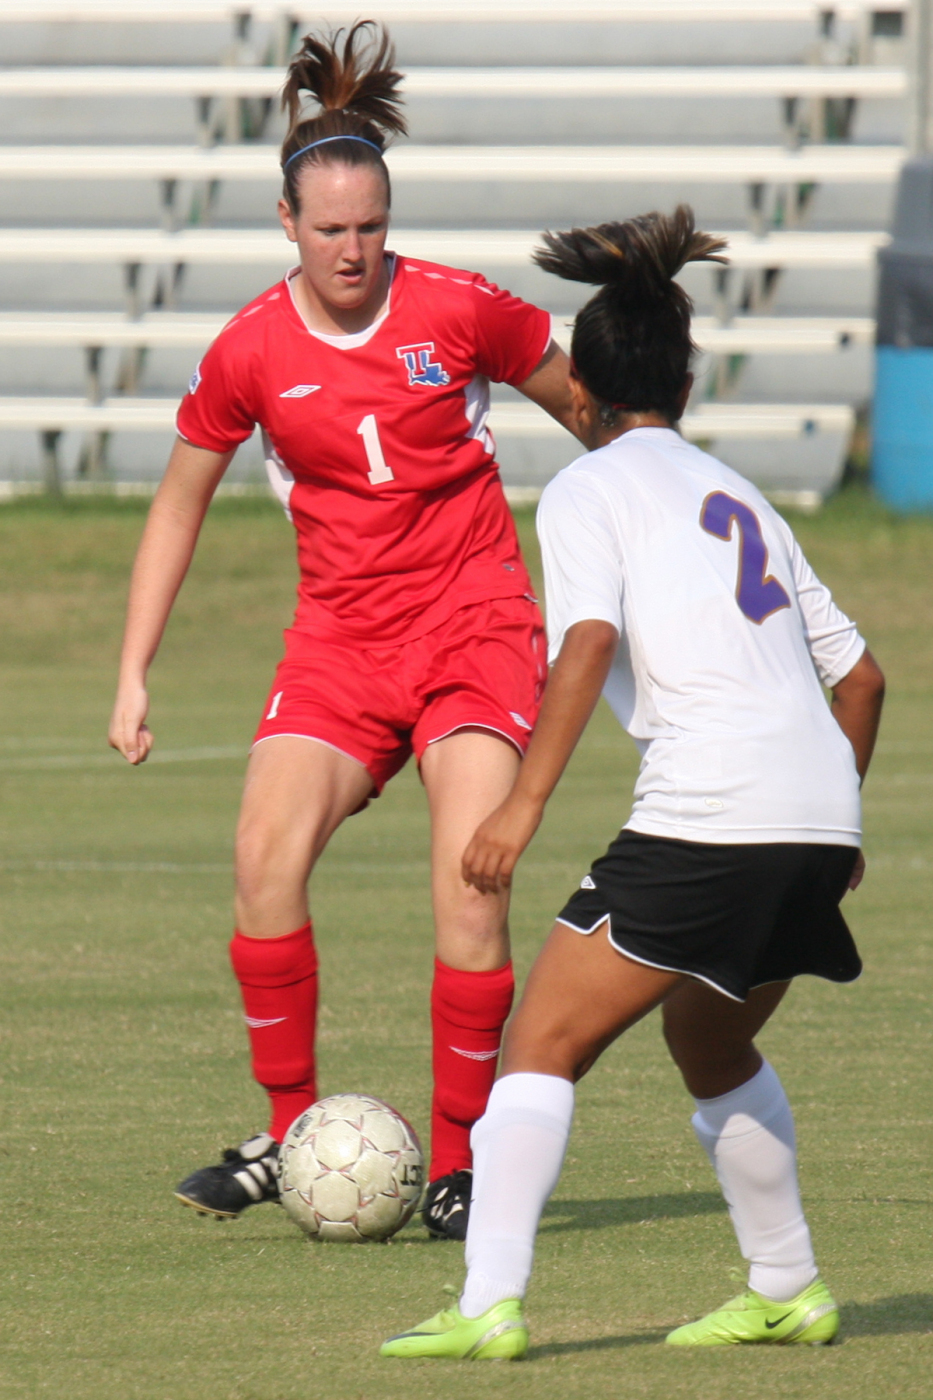 Chelsea White and the Lady Techsters open the season on Friday at 7 p.m.